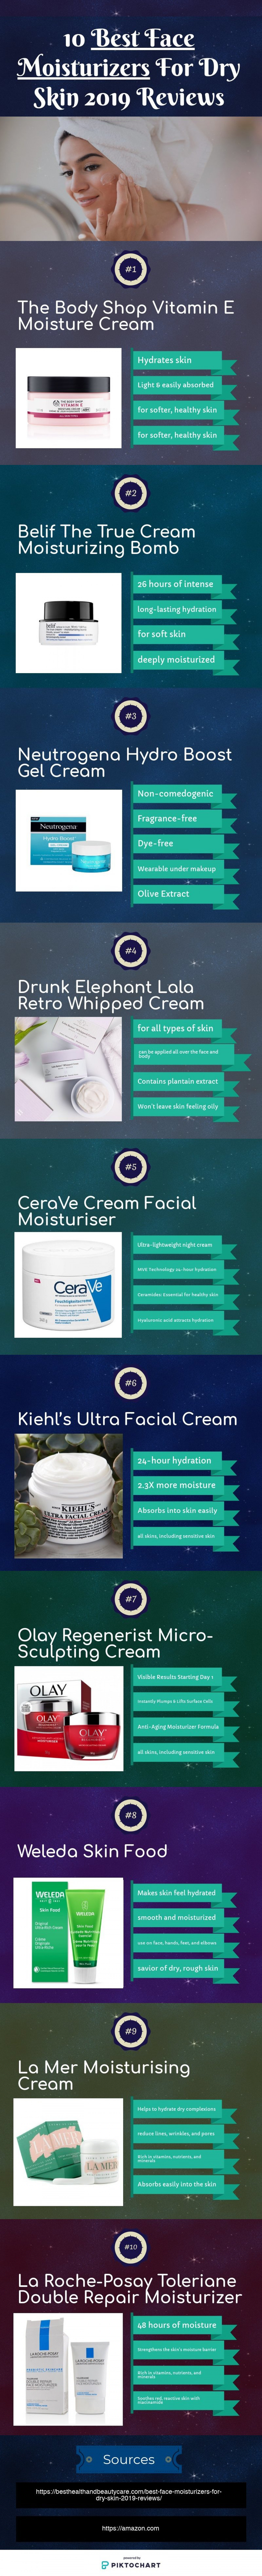 Best Face Moisturizers For Dry Skin 2019 Reviews Infographic